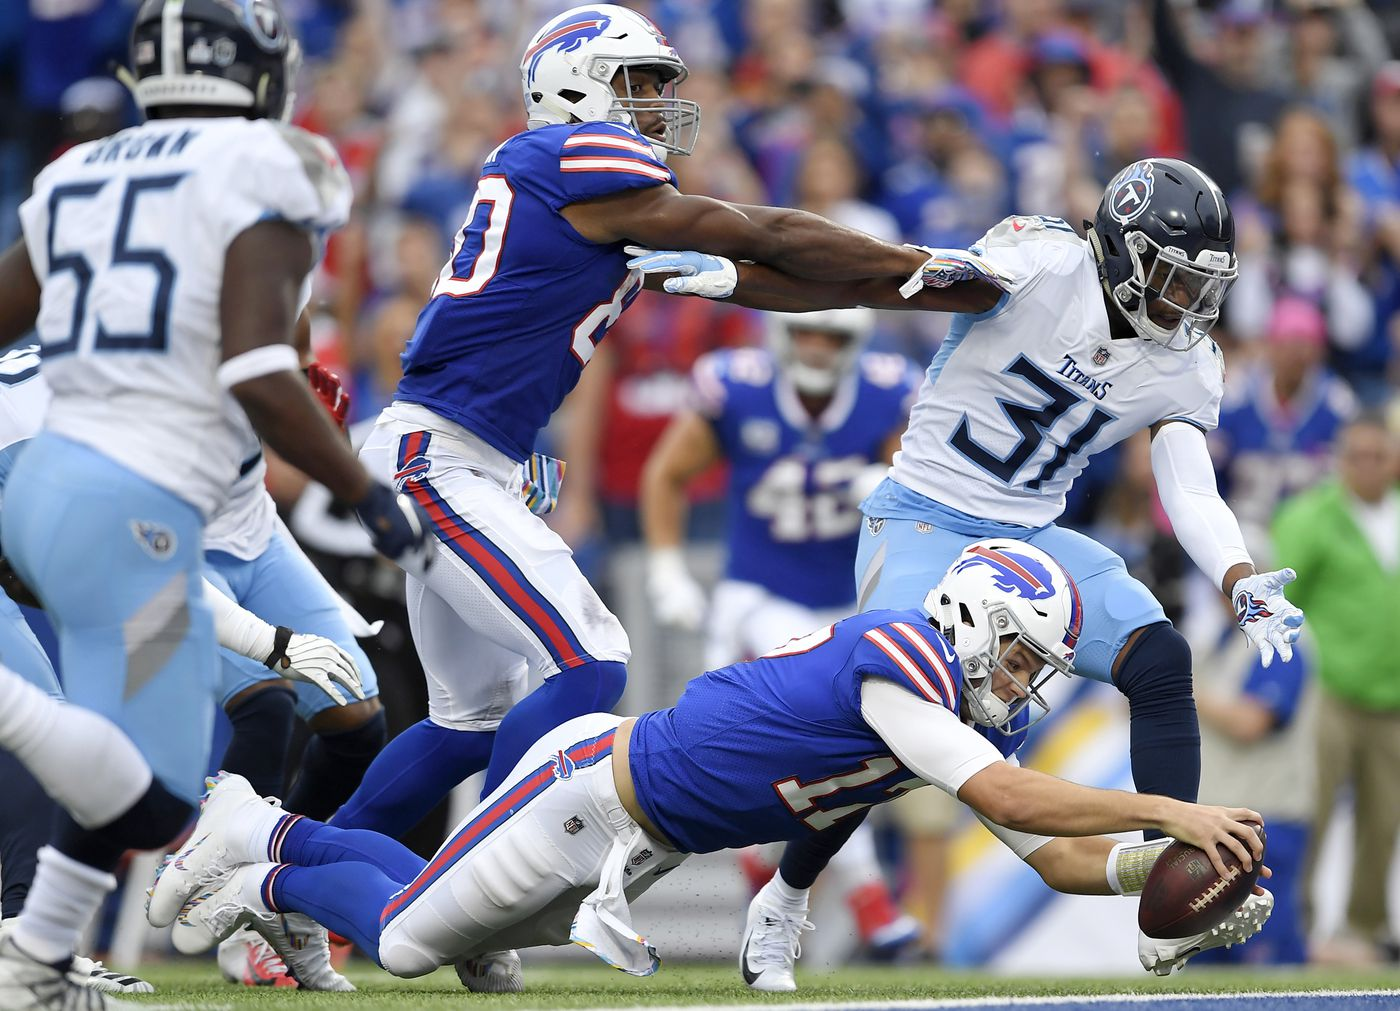 cheaper 509ba af772 Buffalo Bills quarterback Josh Allen (17) dives in for a touchdown run  against the